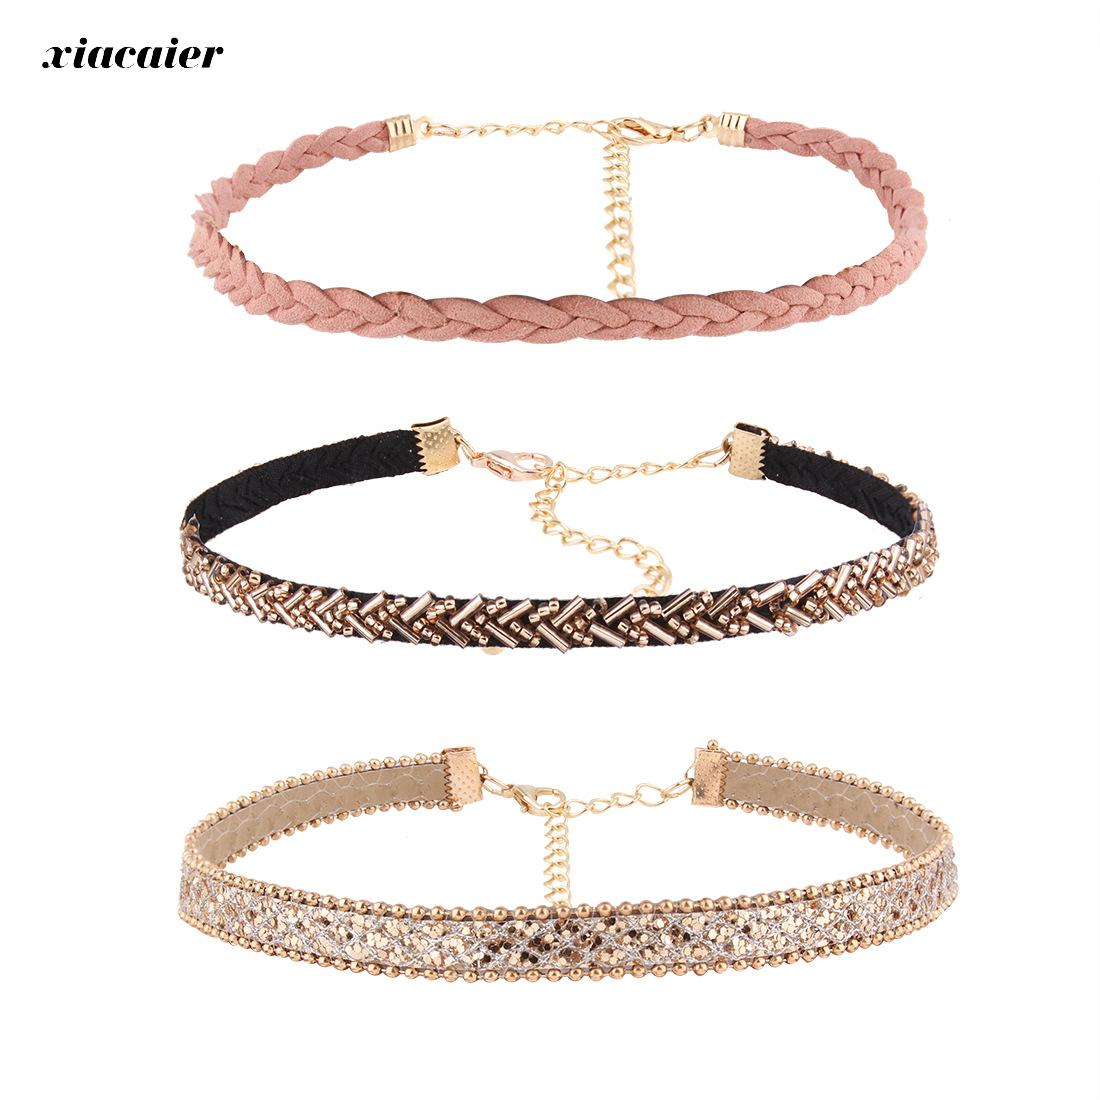 Xiacaier 3pcs/set Chokers Necklaces For Women Leather Rope Chain Colar Female Collier Femme Vintage Jewelry Chocker Wholesale fashion statement necklace red blue crystal flower pendant leather chain choker colar chokers necklaces women chocker jewelry